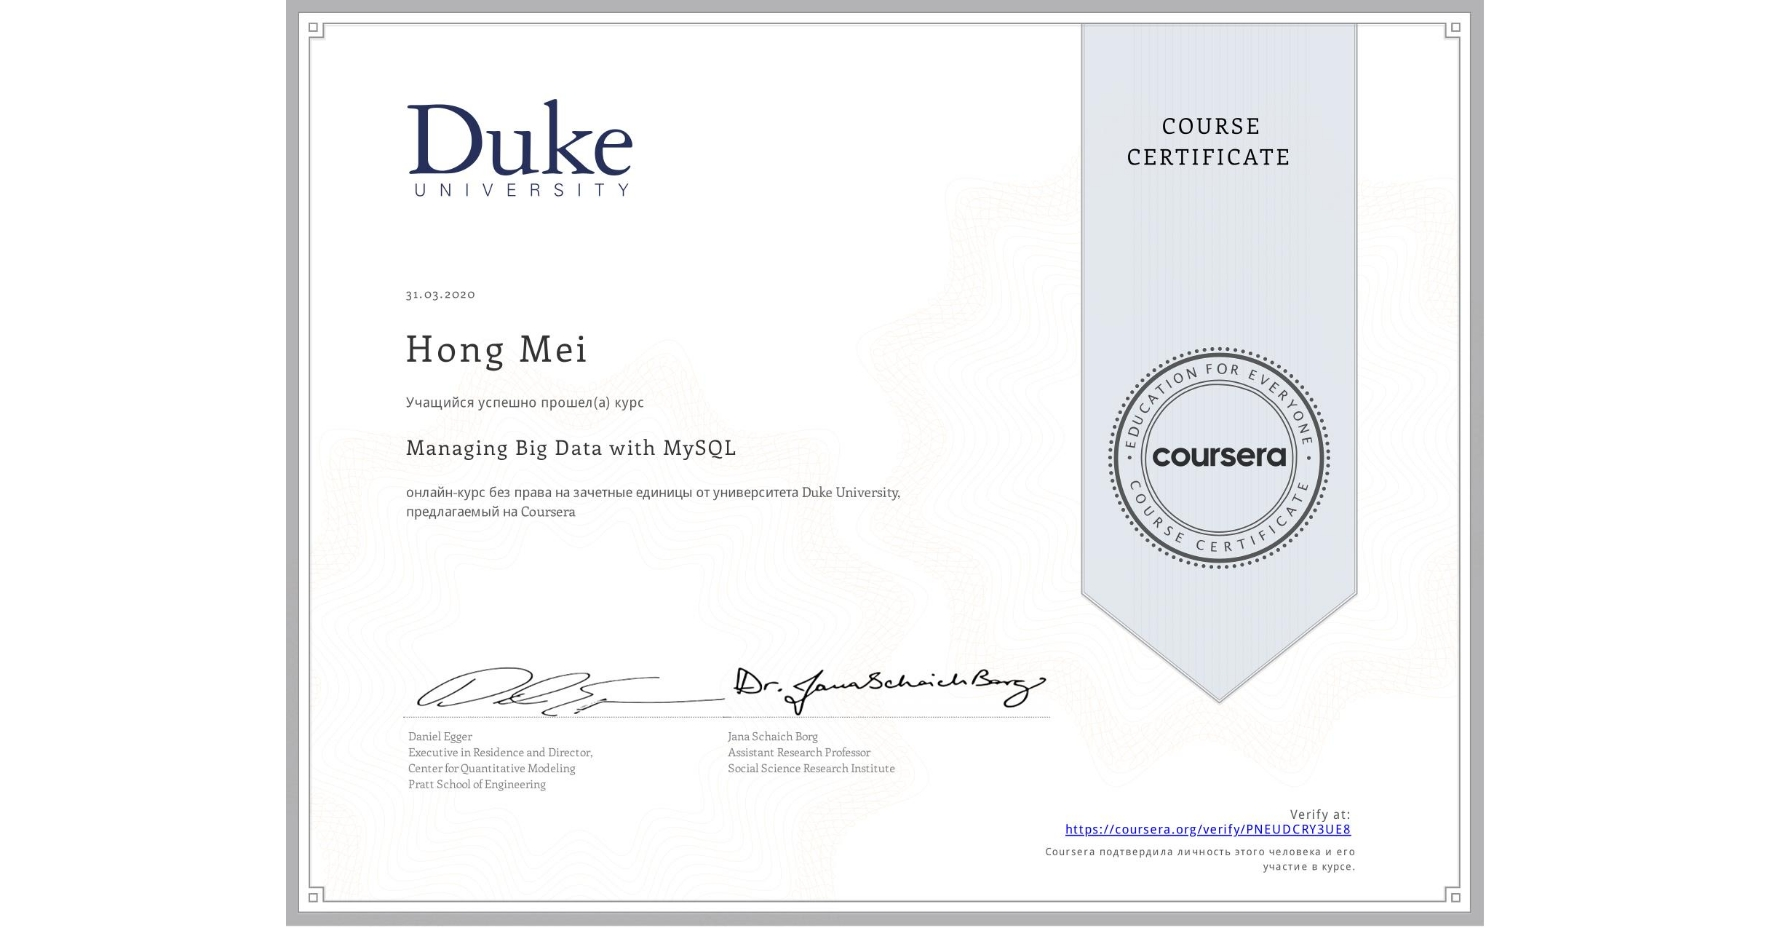 View certificate for Hong Mei, Managing Big Data with MySQL, an online non-credit course authorized by Duke University and offered through Coursera